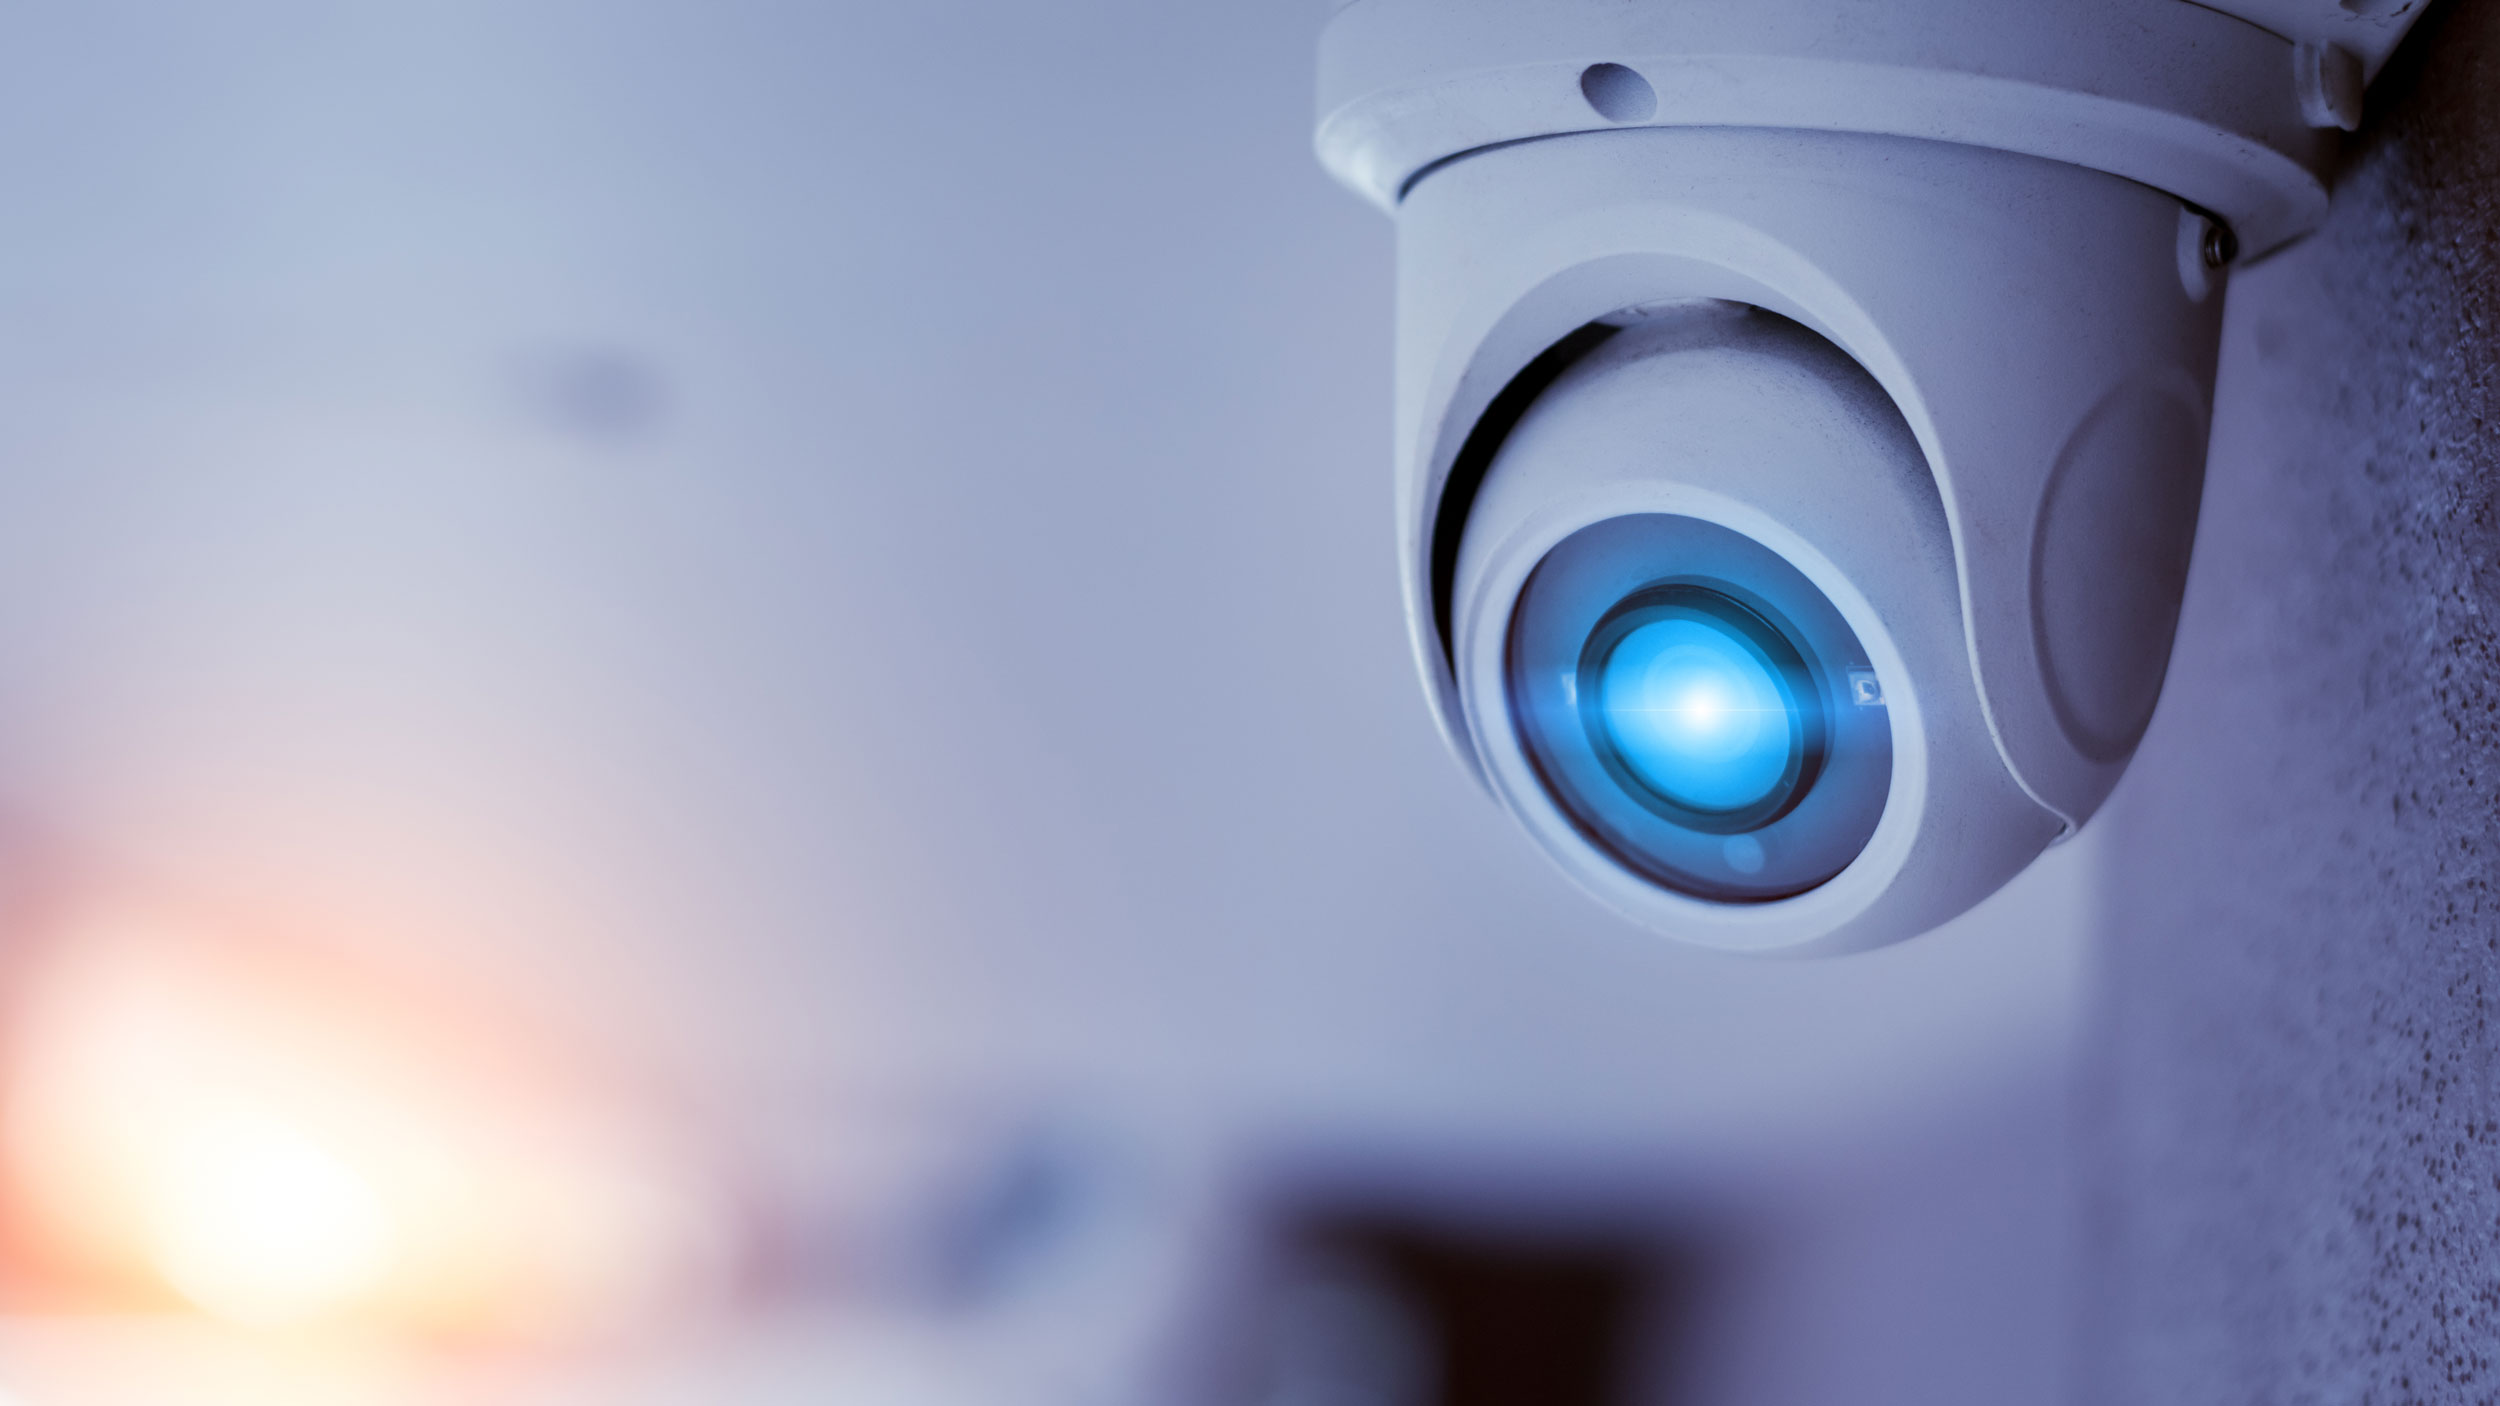 CCTV Camera with Blue Light